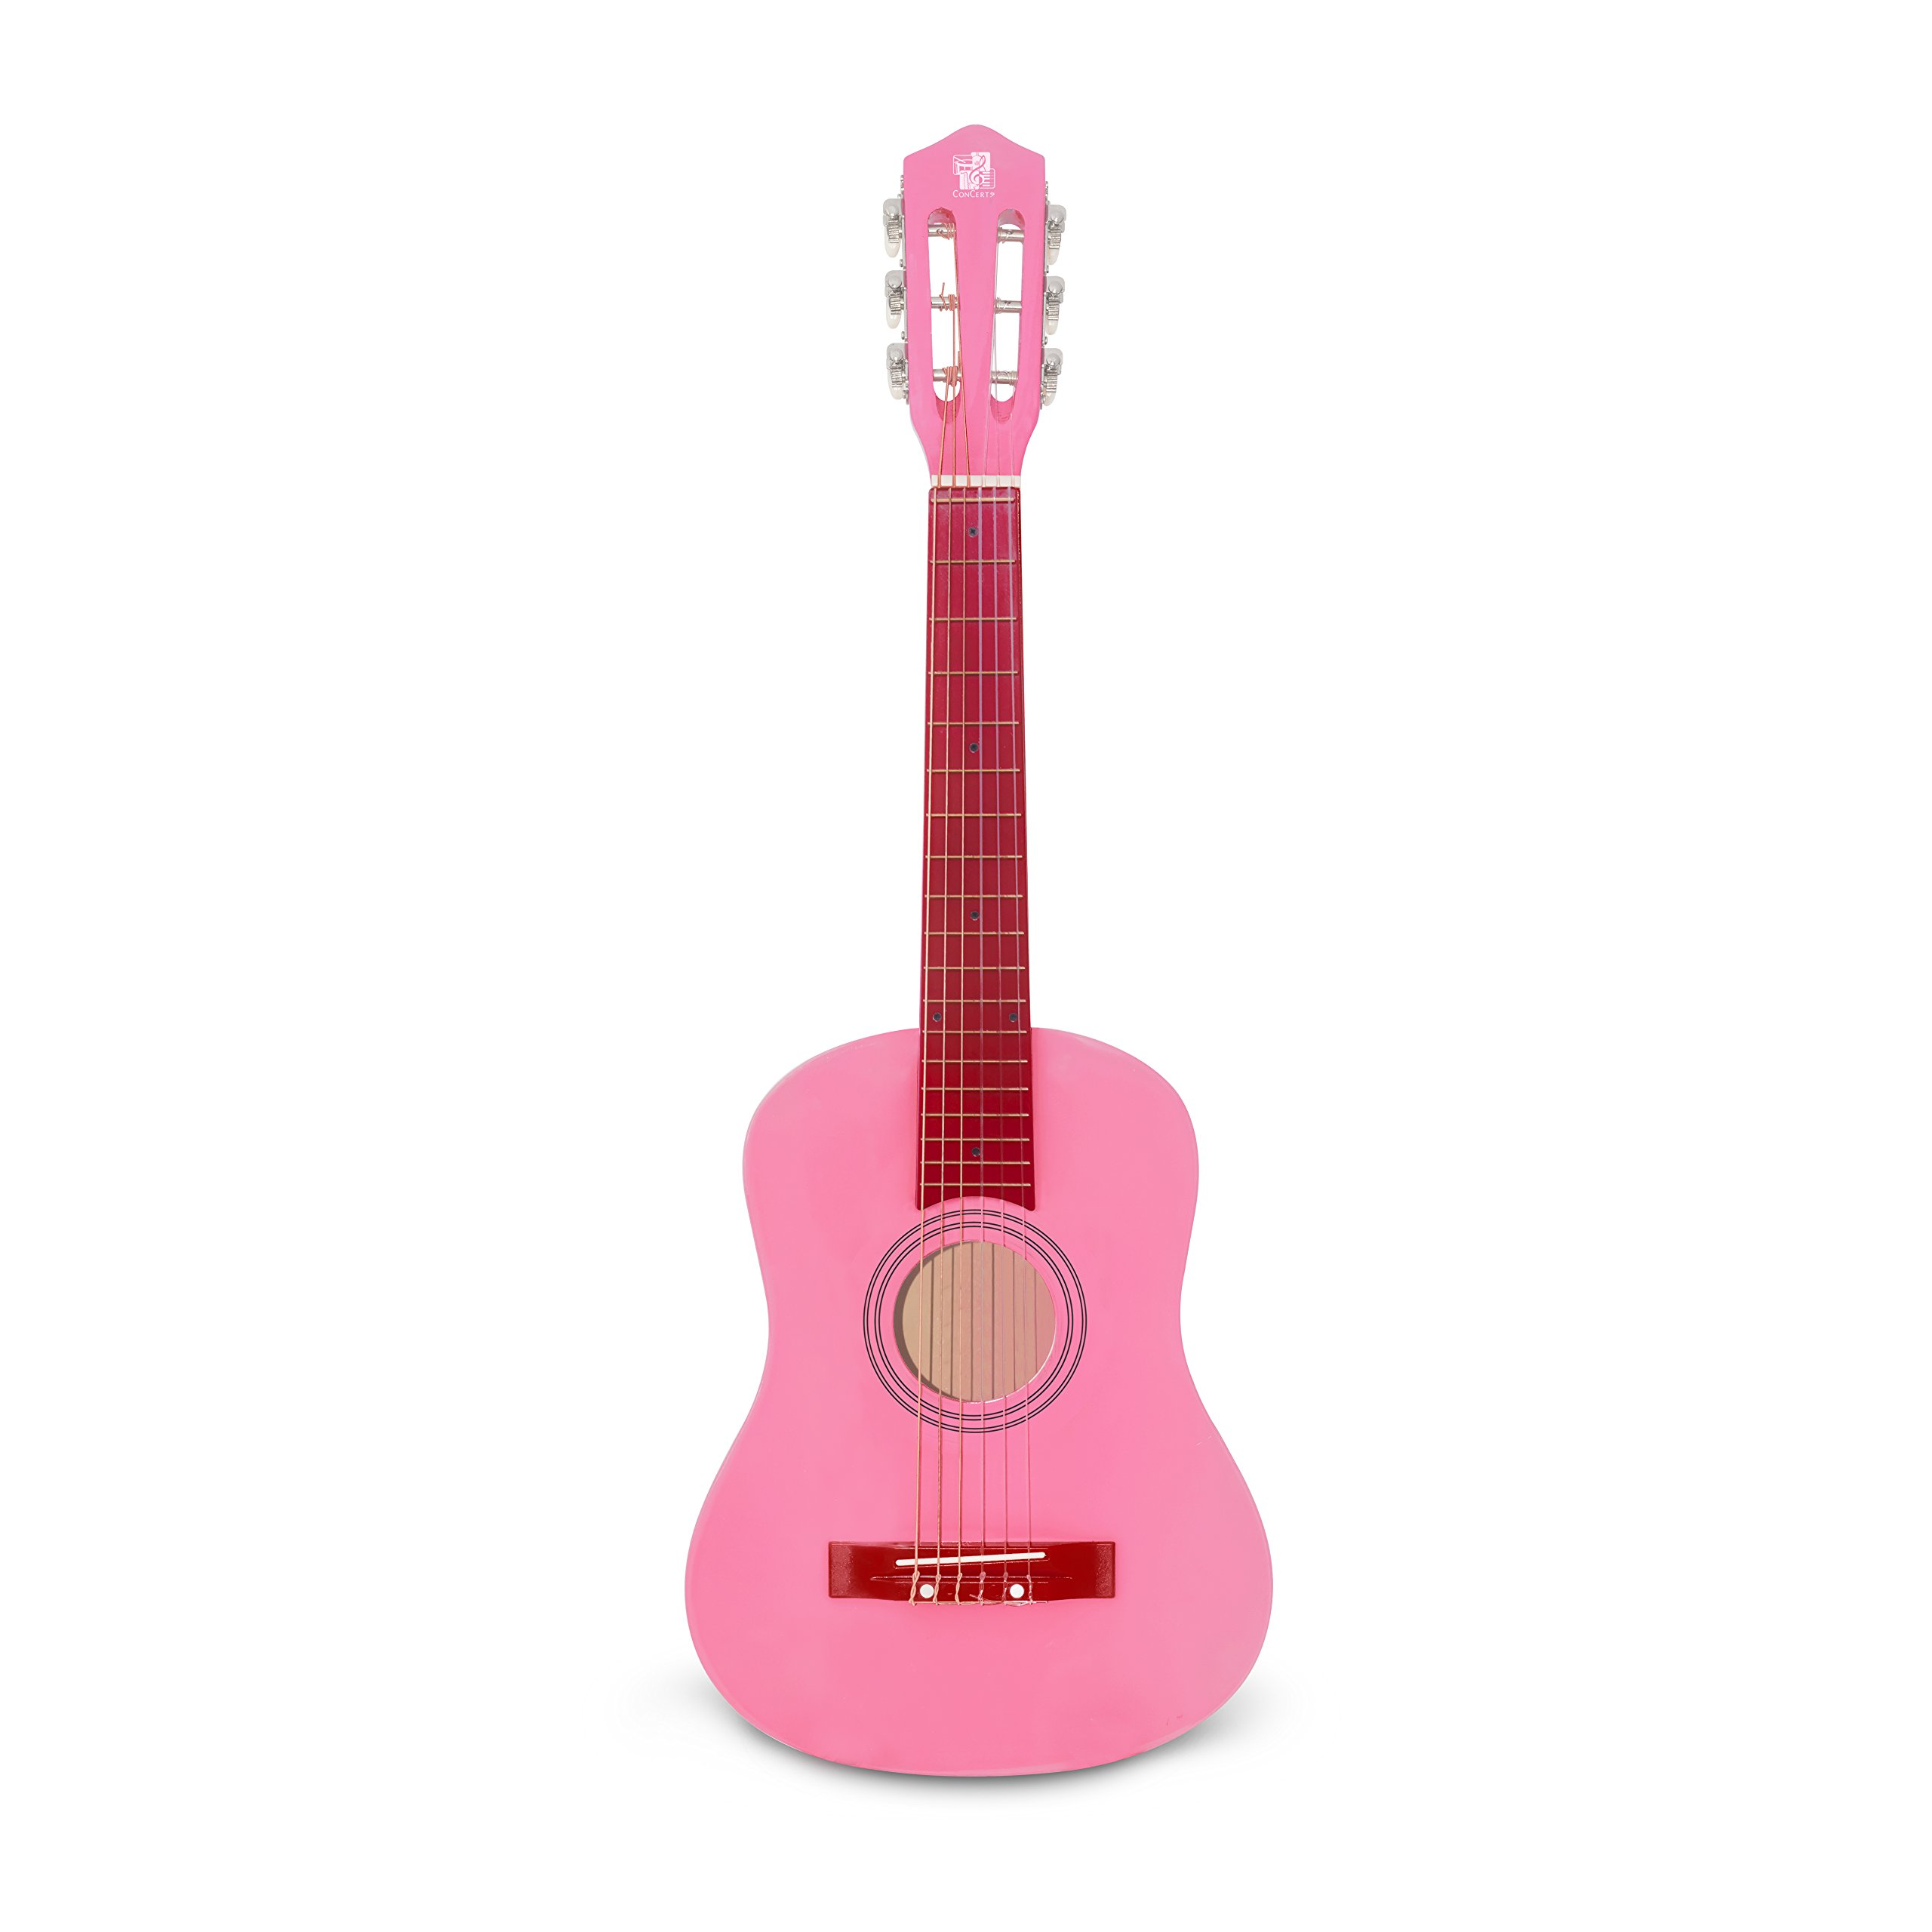 Concerto 30 Inch Pink Classical Guitar/ Girls gift/ Kids musical toys, musical instrument